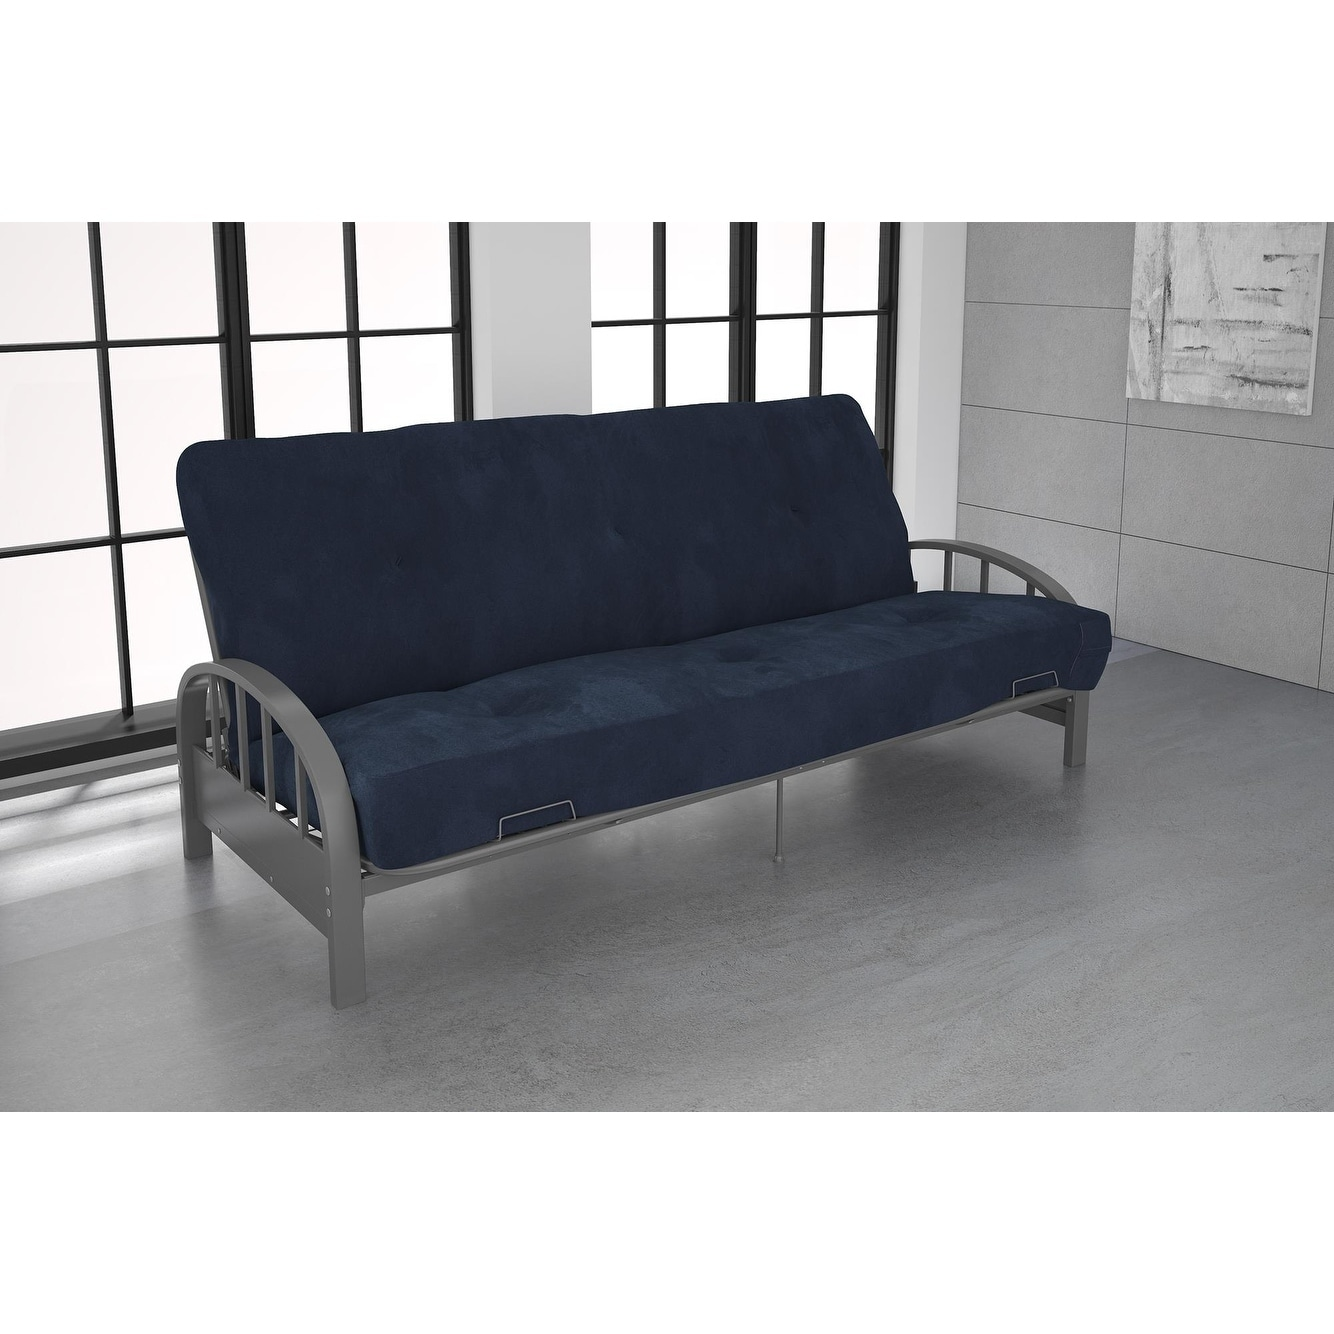 Dhp Aiden Silver Futon Frame And 6 Inch Mattress Set Free Shipping Today Com 22899205